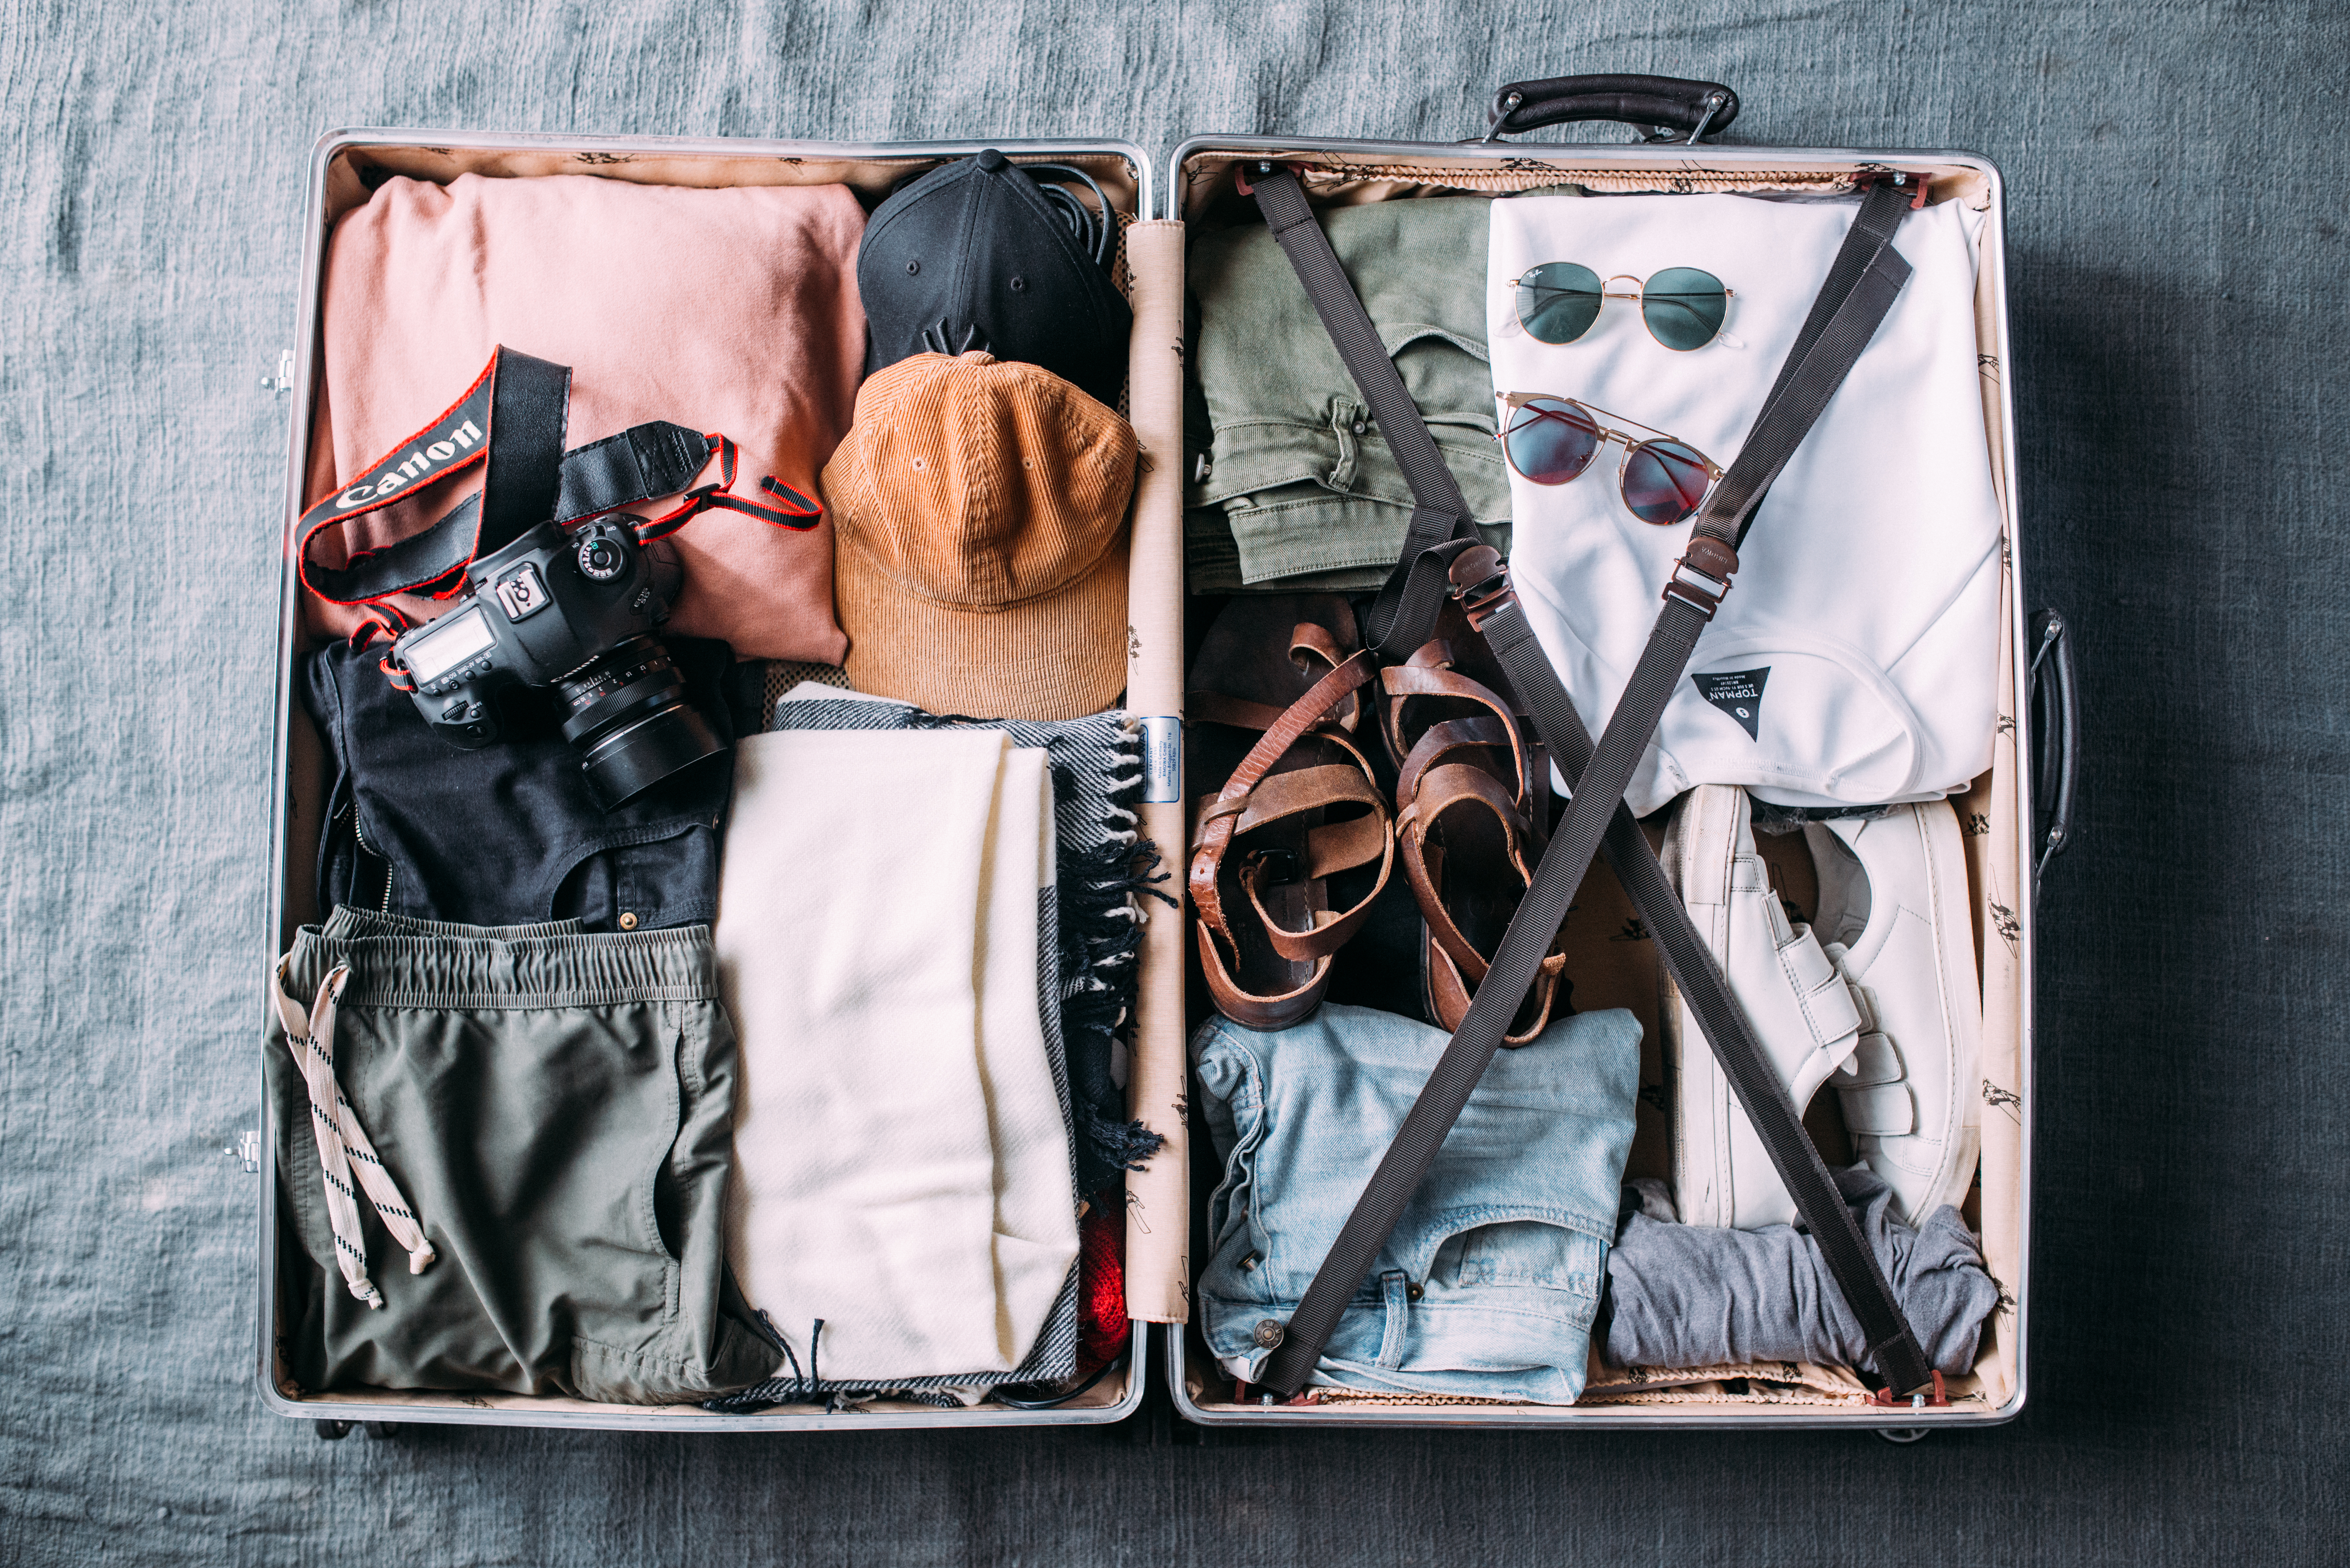 rimowa_packing-1-of-1